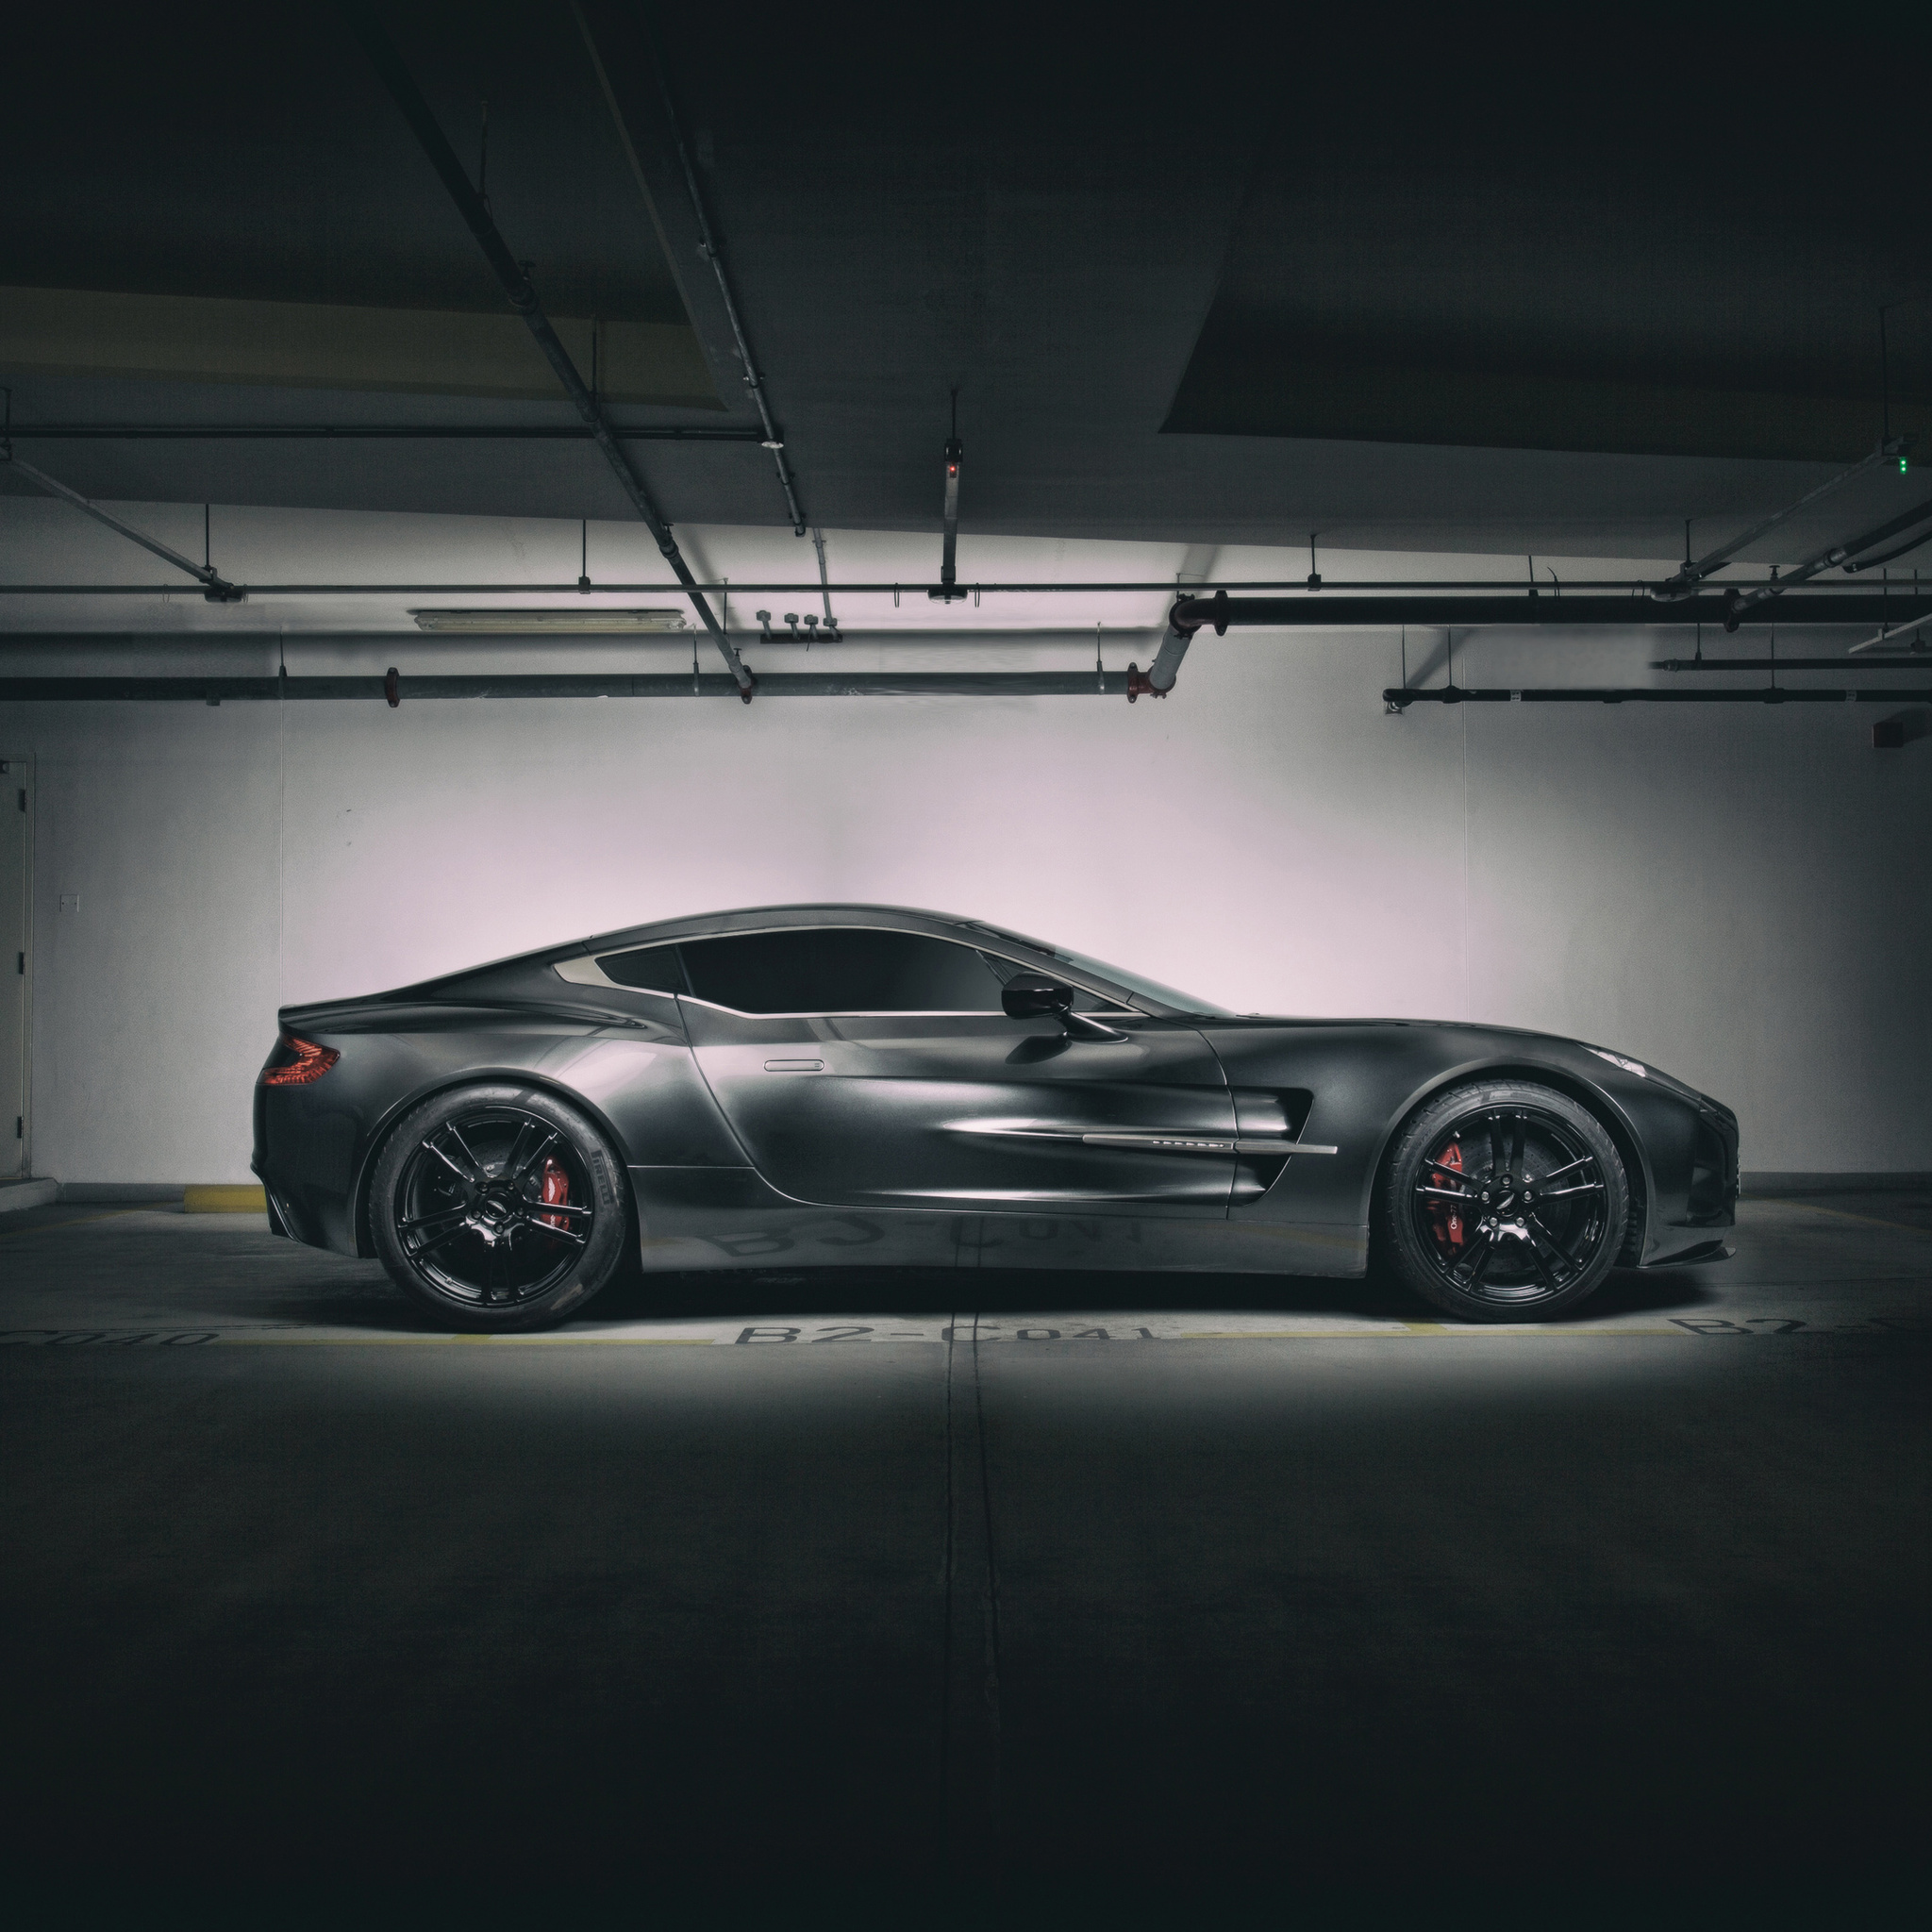 aston martin q one 77 in 2048x2048 resolution. Cars Review. Best American Auto & Cars Review